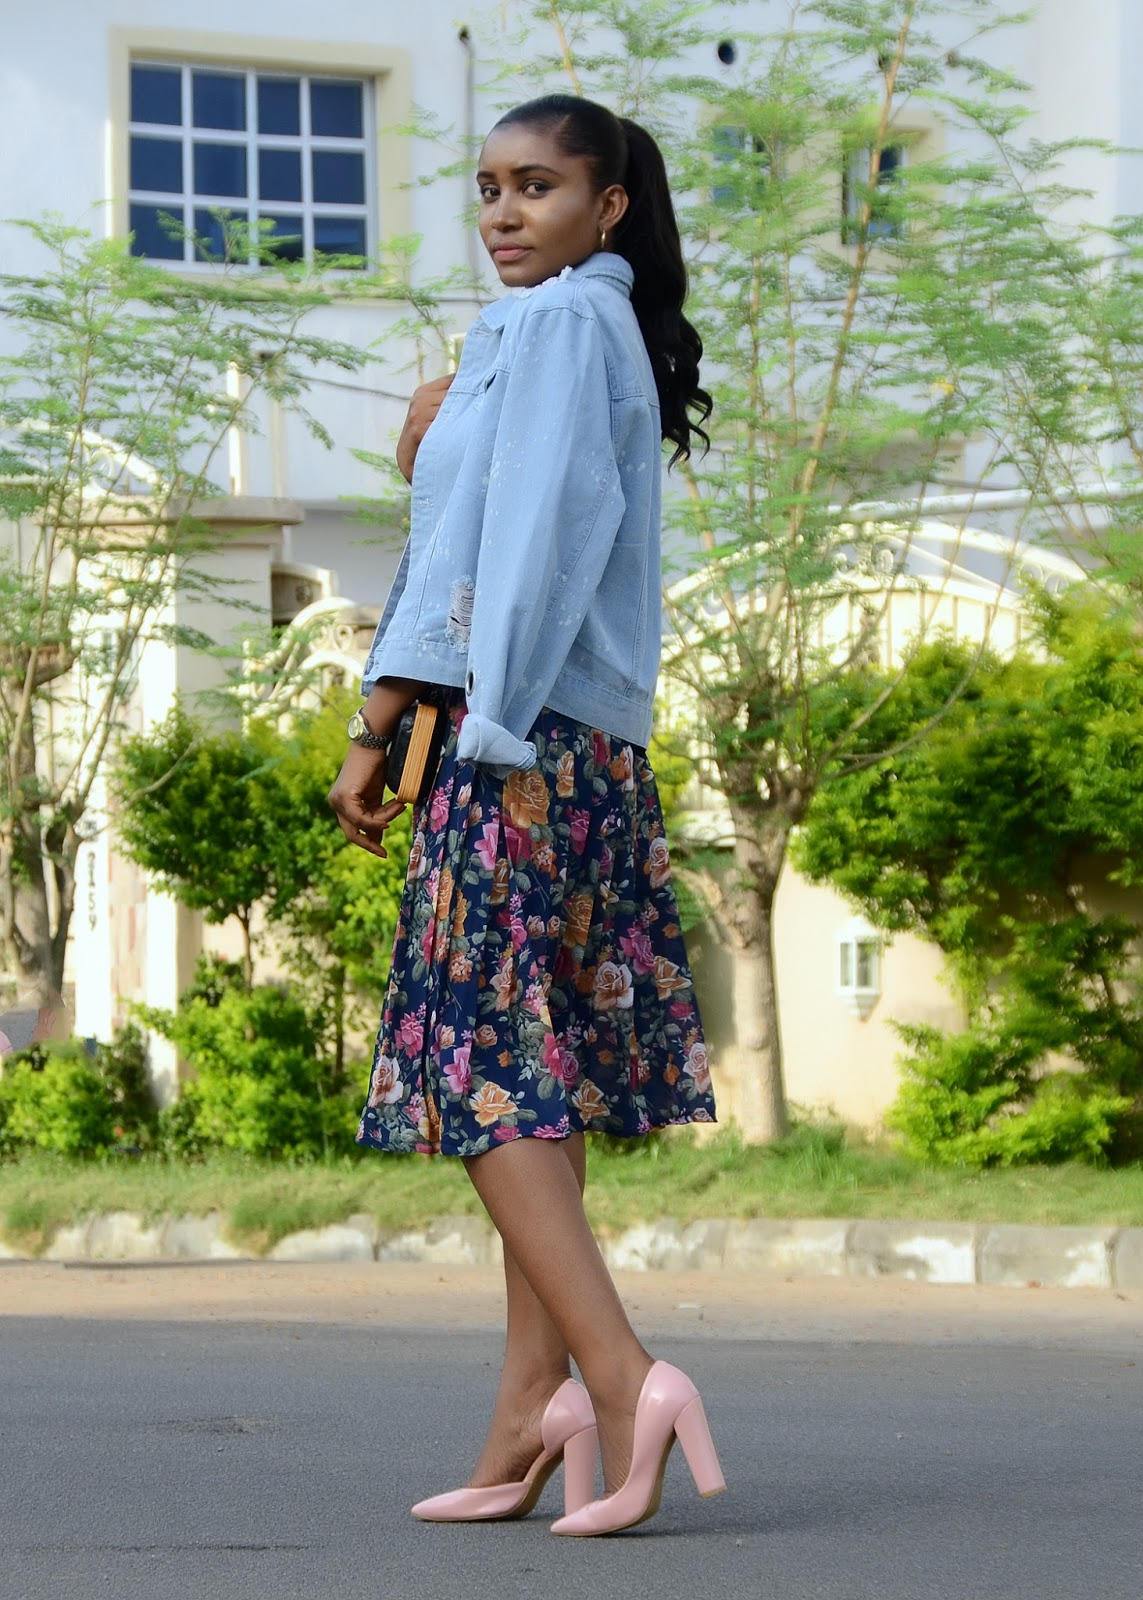 statement neckpiece, denim jacket, pleated floral skirt, block heels, box clutch - dafashionfreak